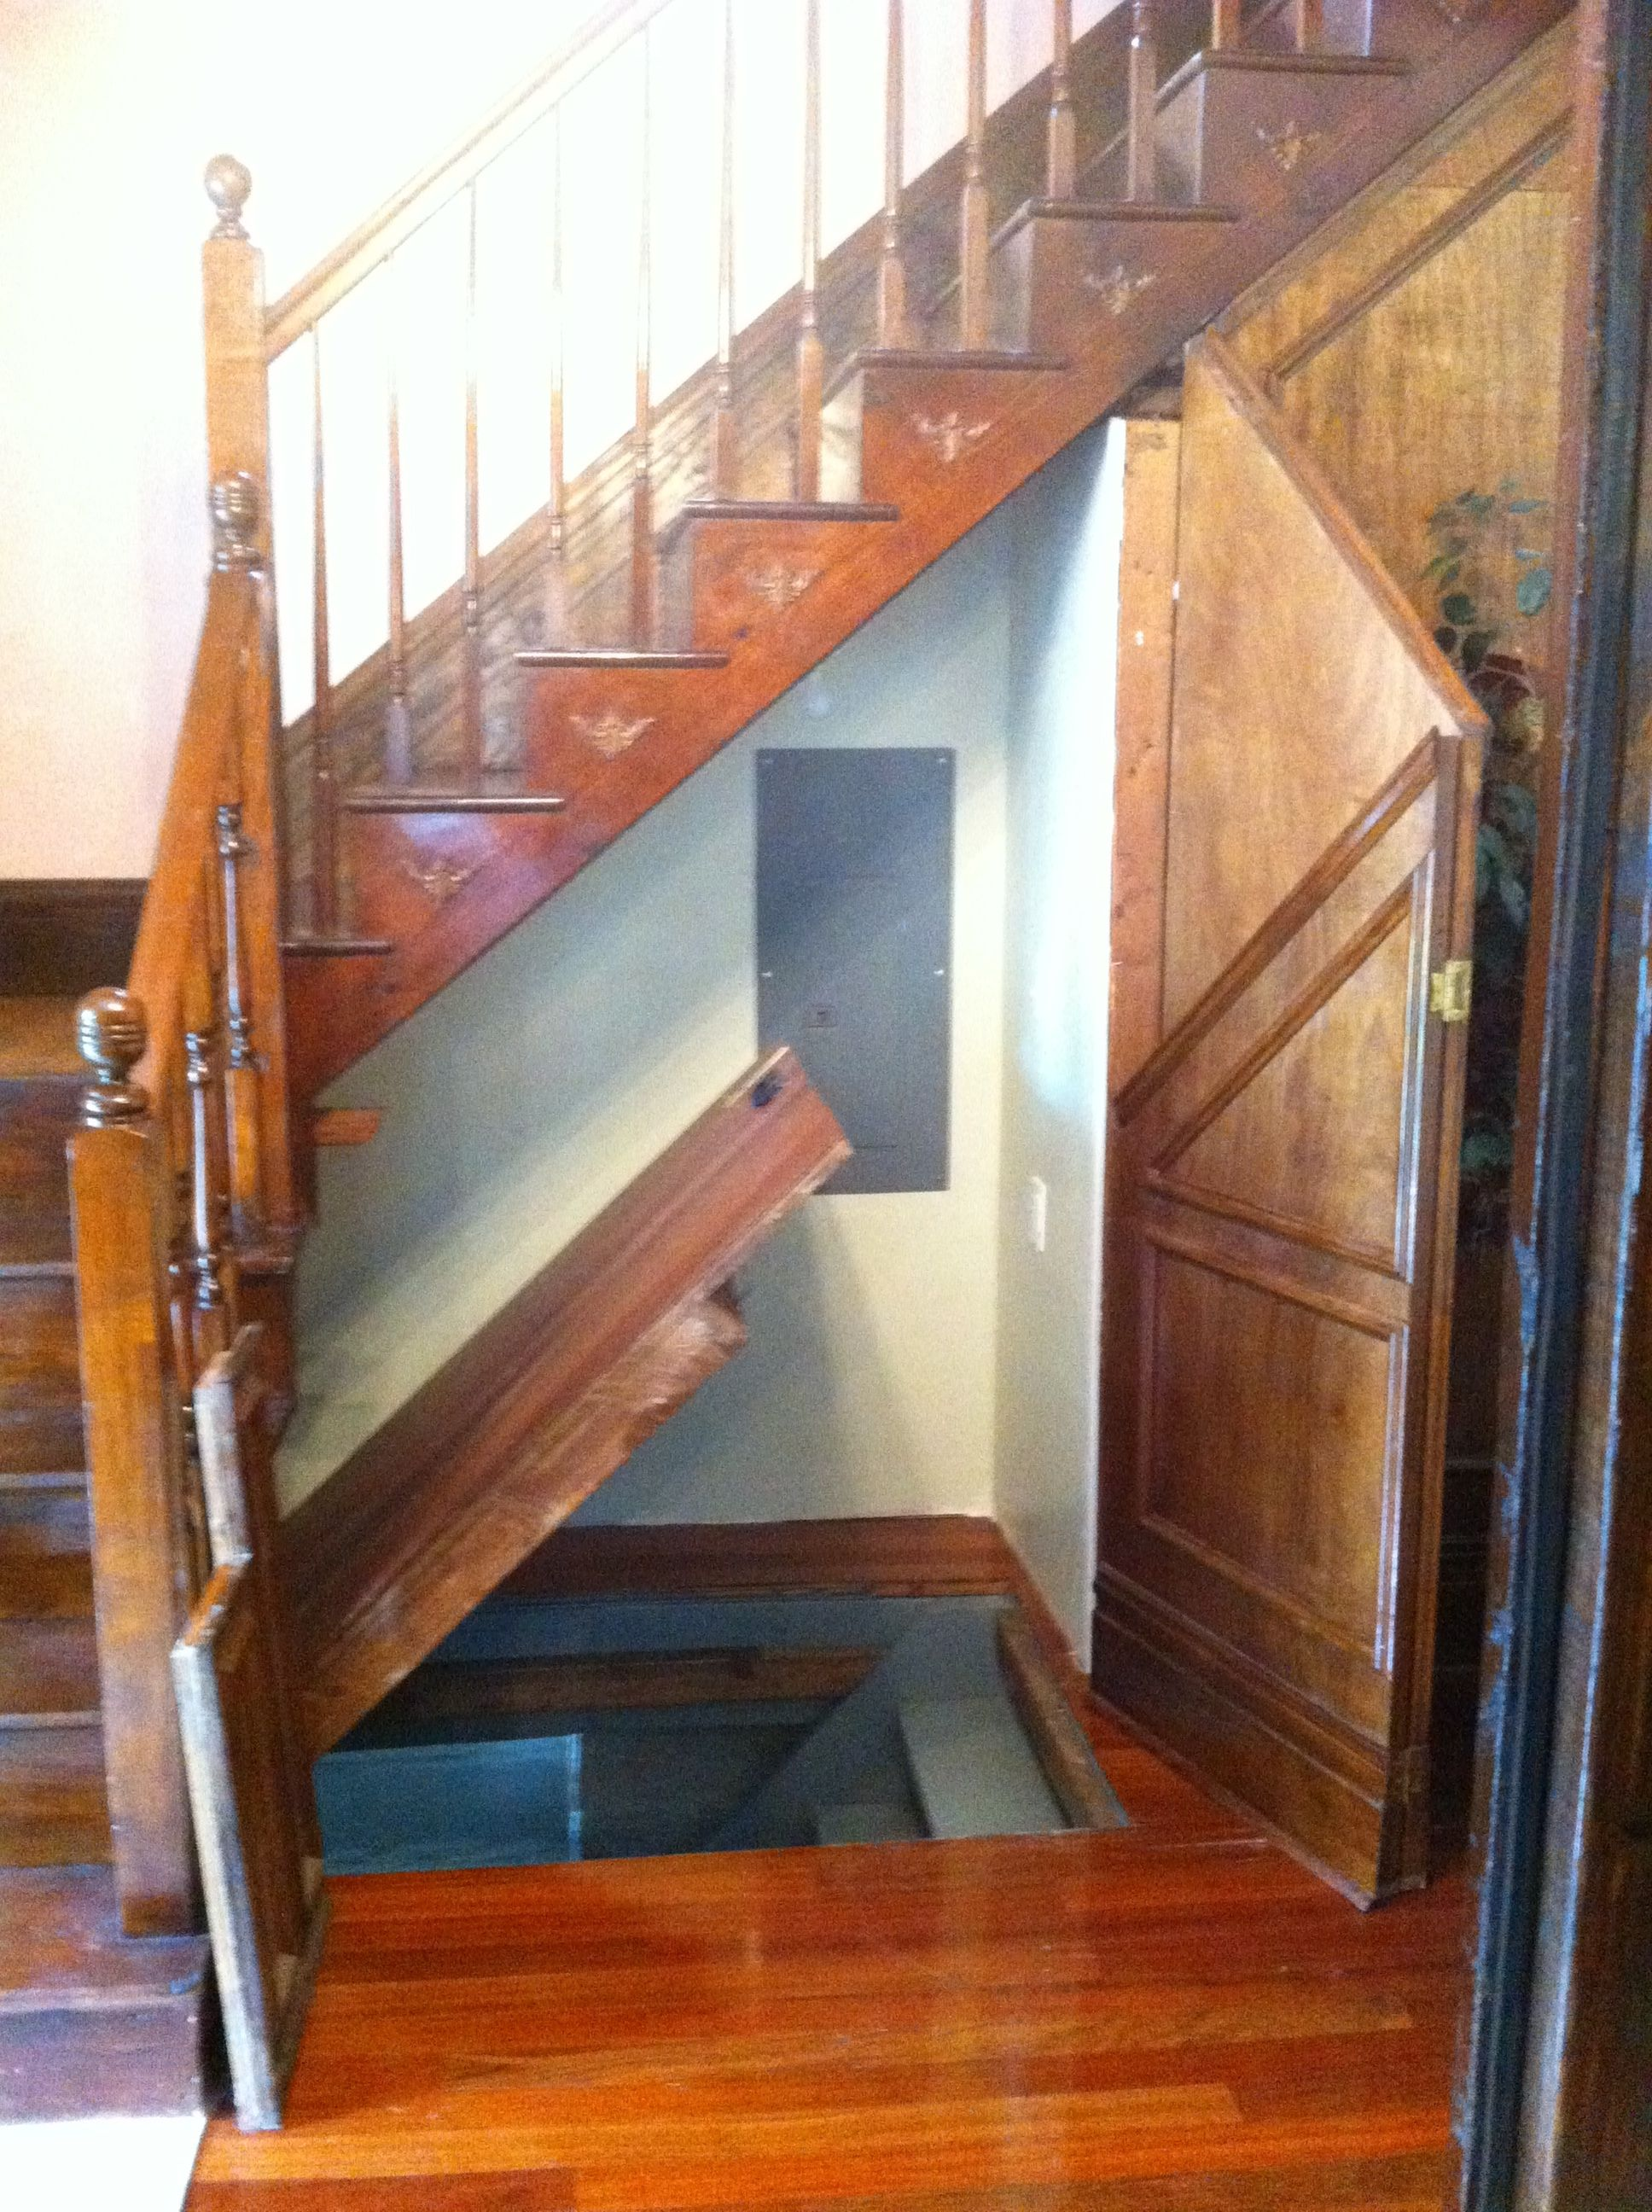 Hidden staircase under another staircase Or hidden door for small storage space in a tiny home. & Hidden staircase under another staircase Or hidden door for small s ...